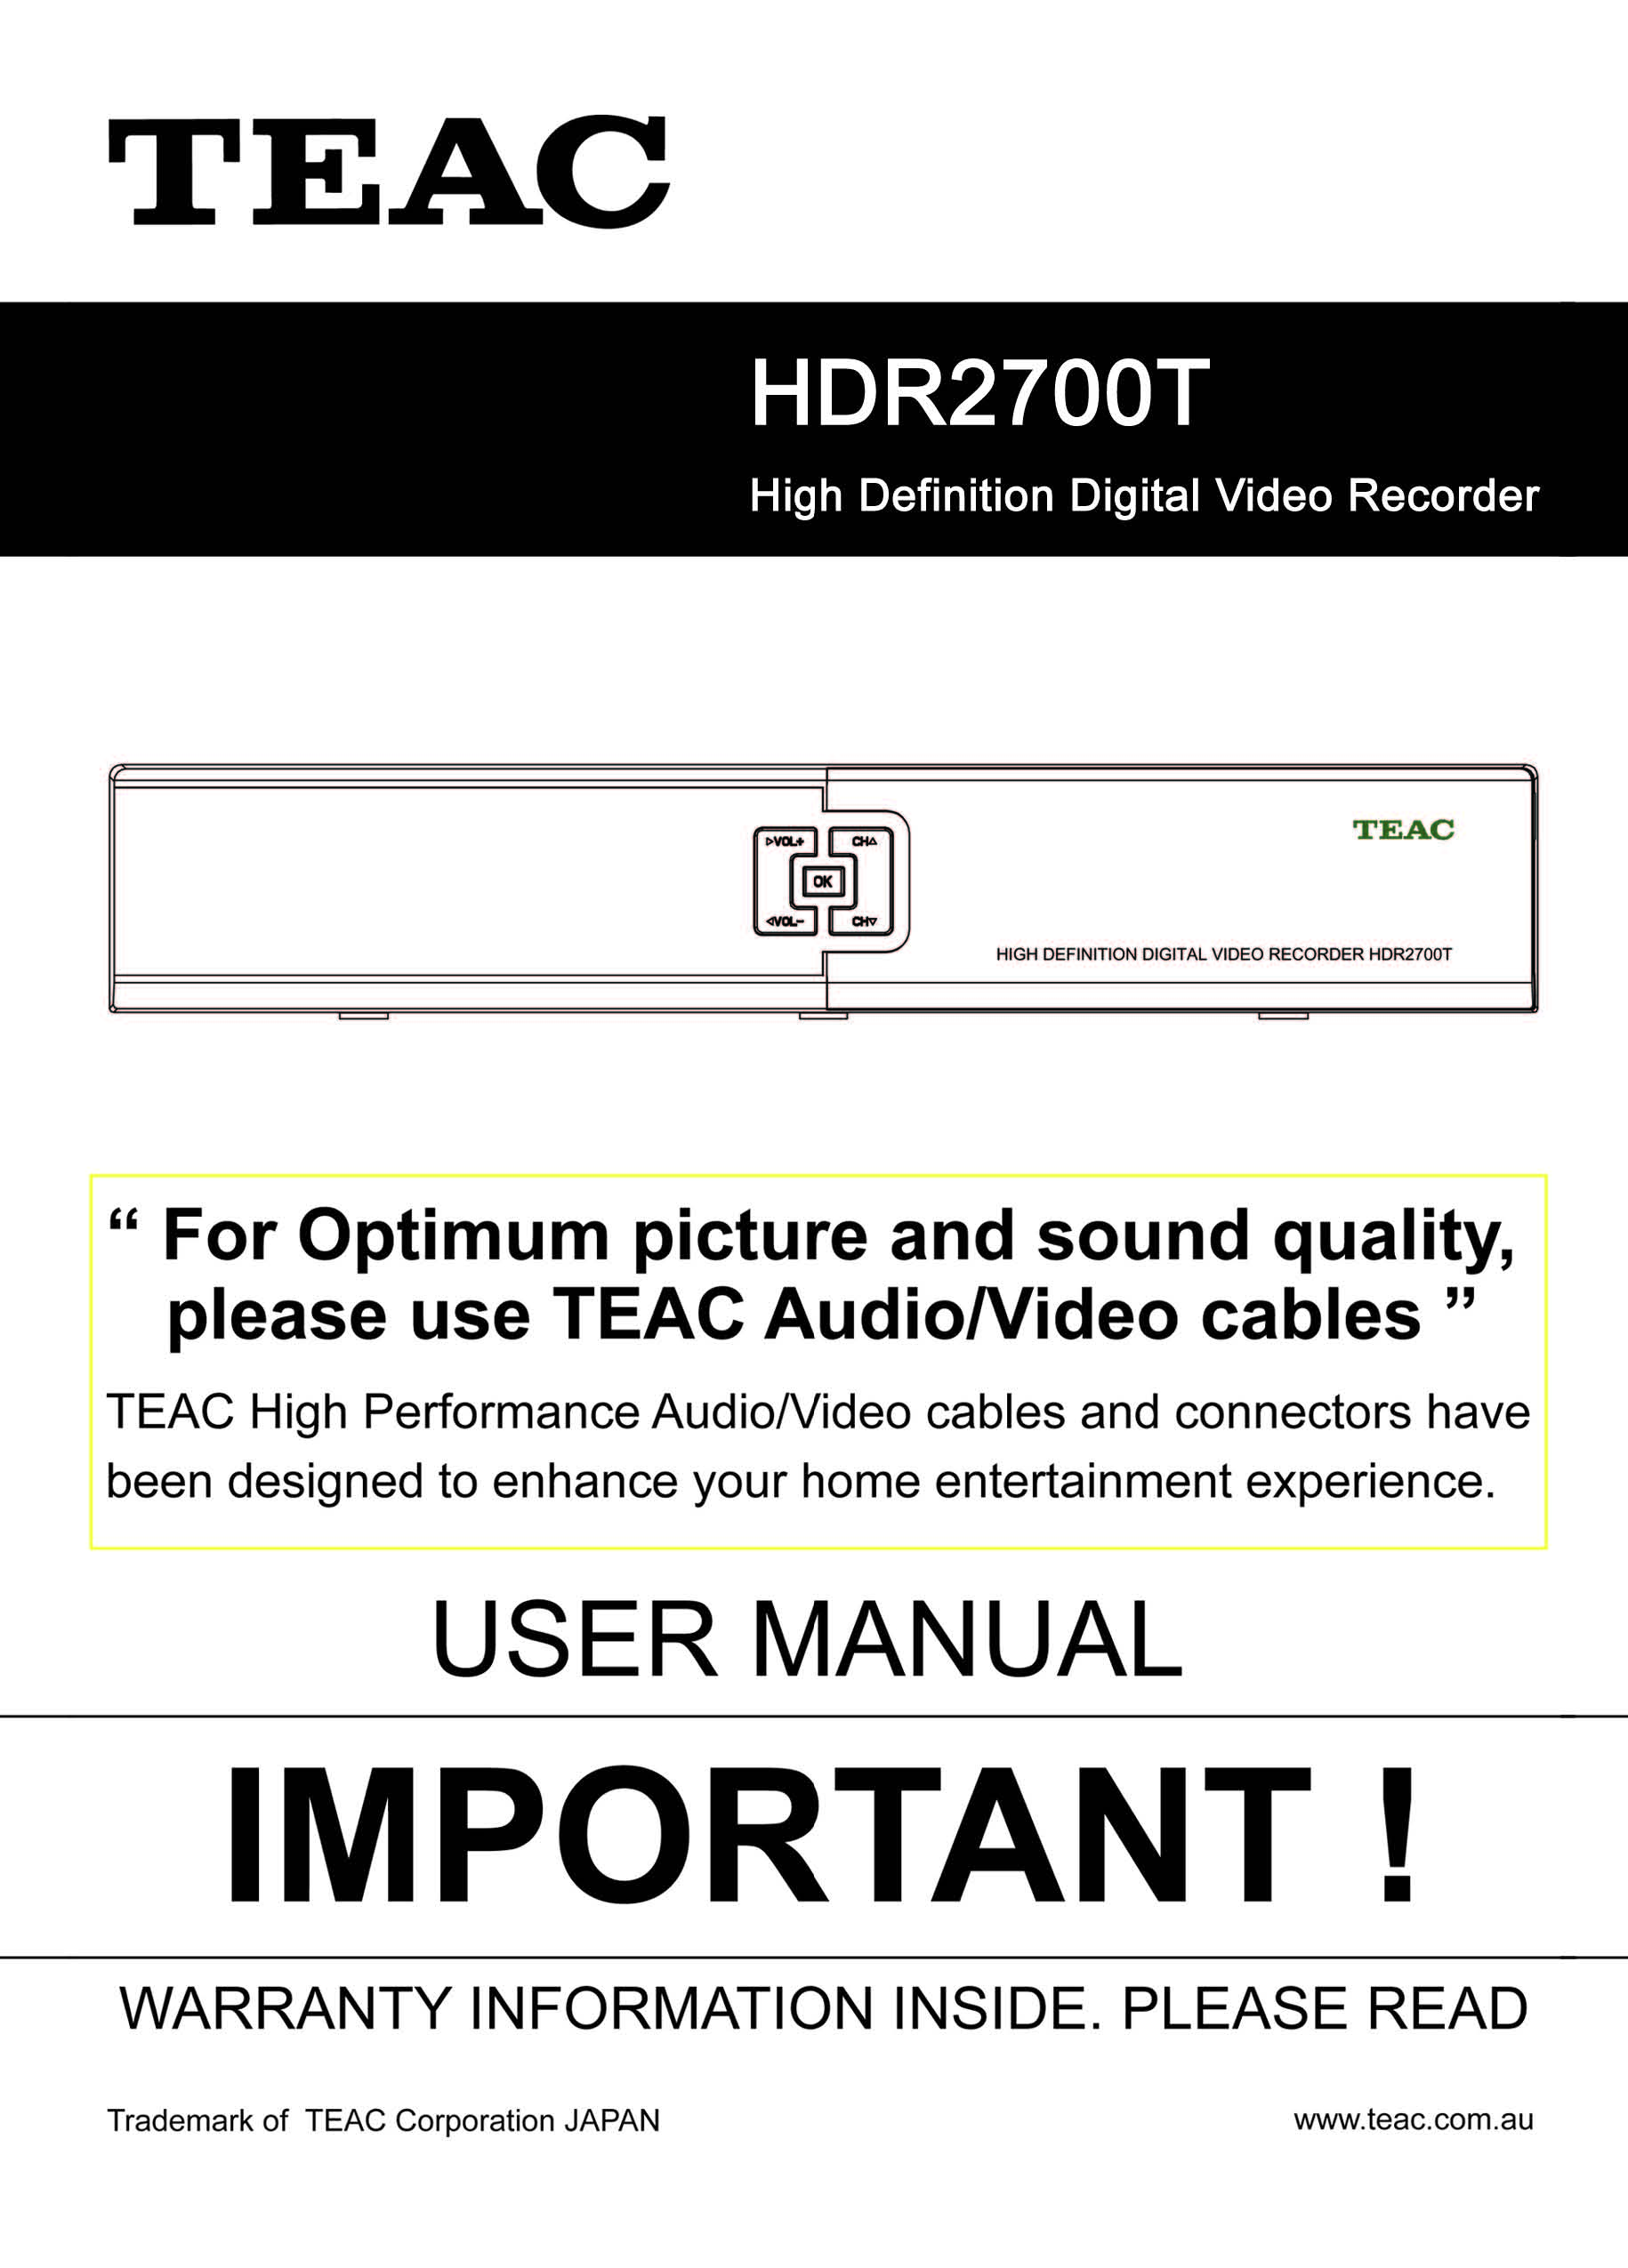 TEAC HDR2700T Instruction Manual